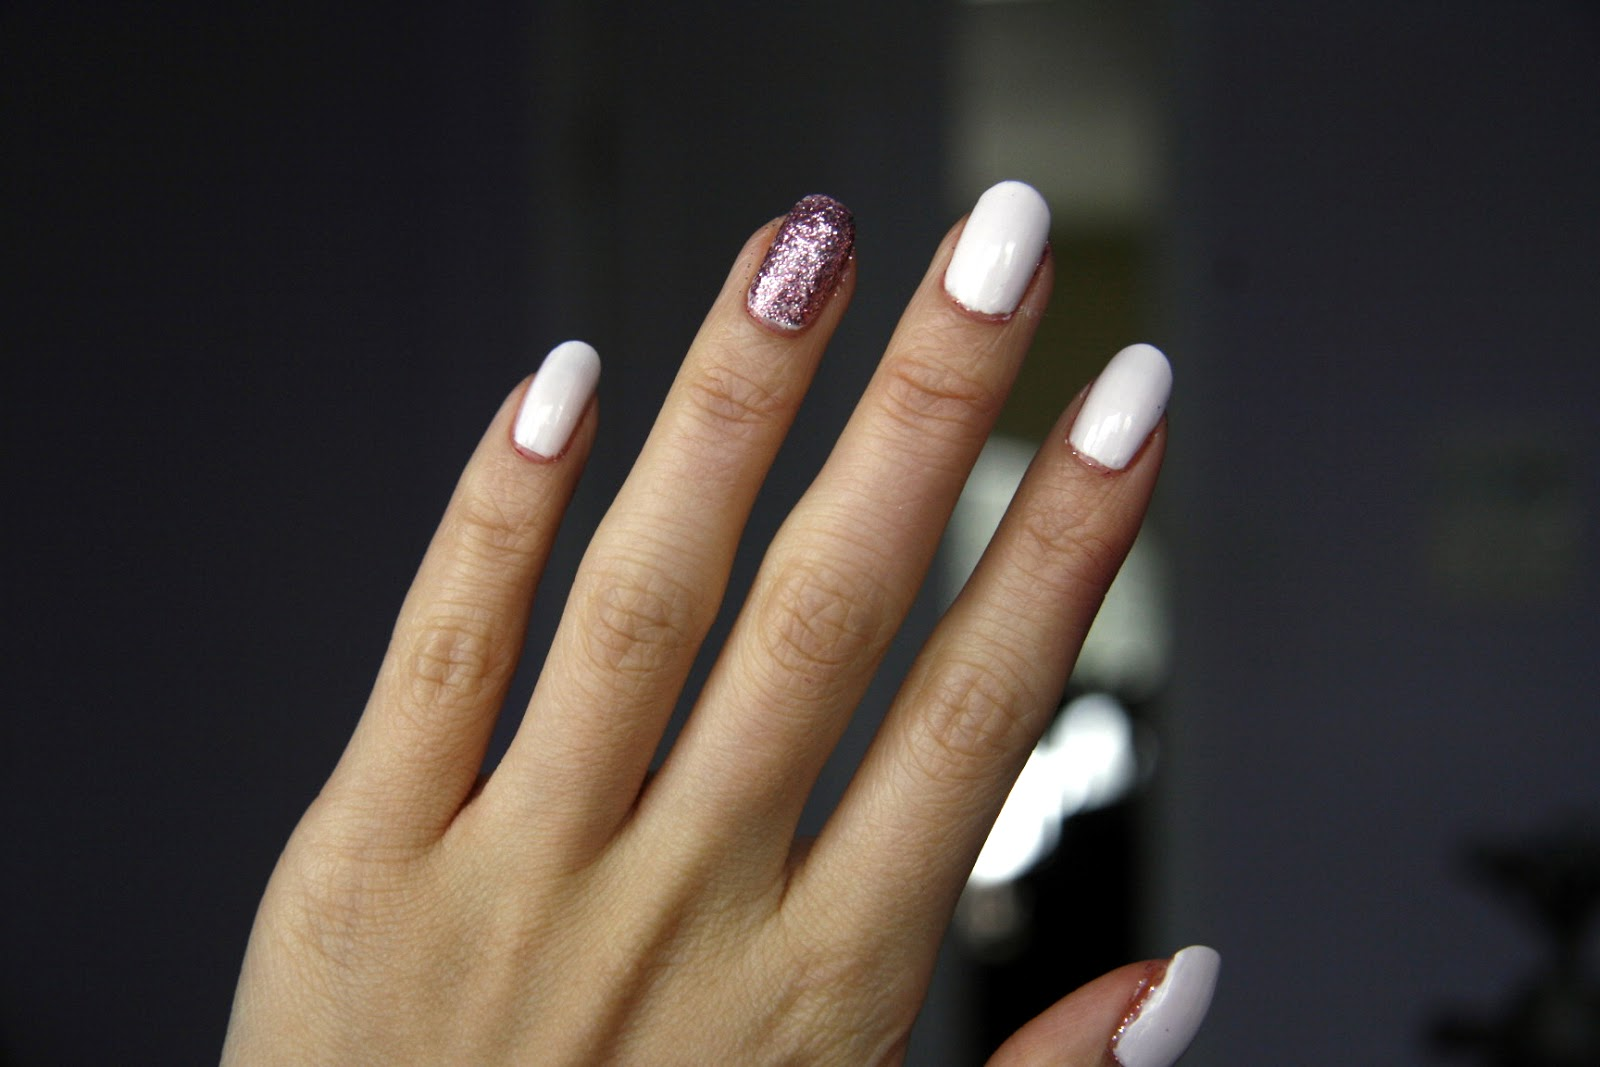 fun size beauty: The Glitter Accent Nail